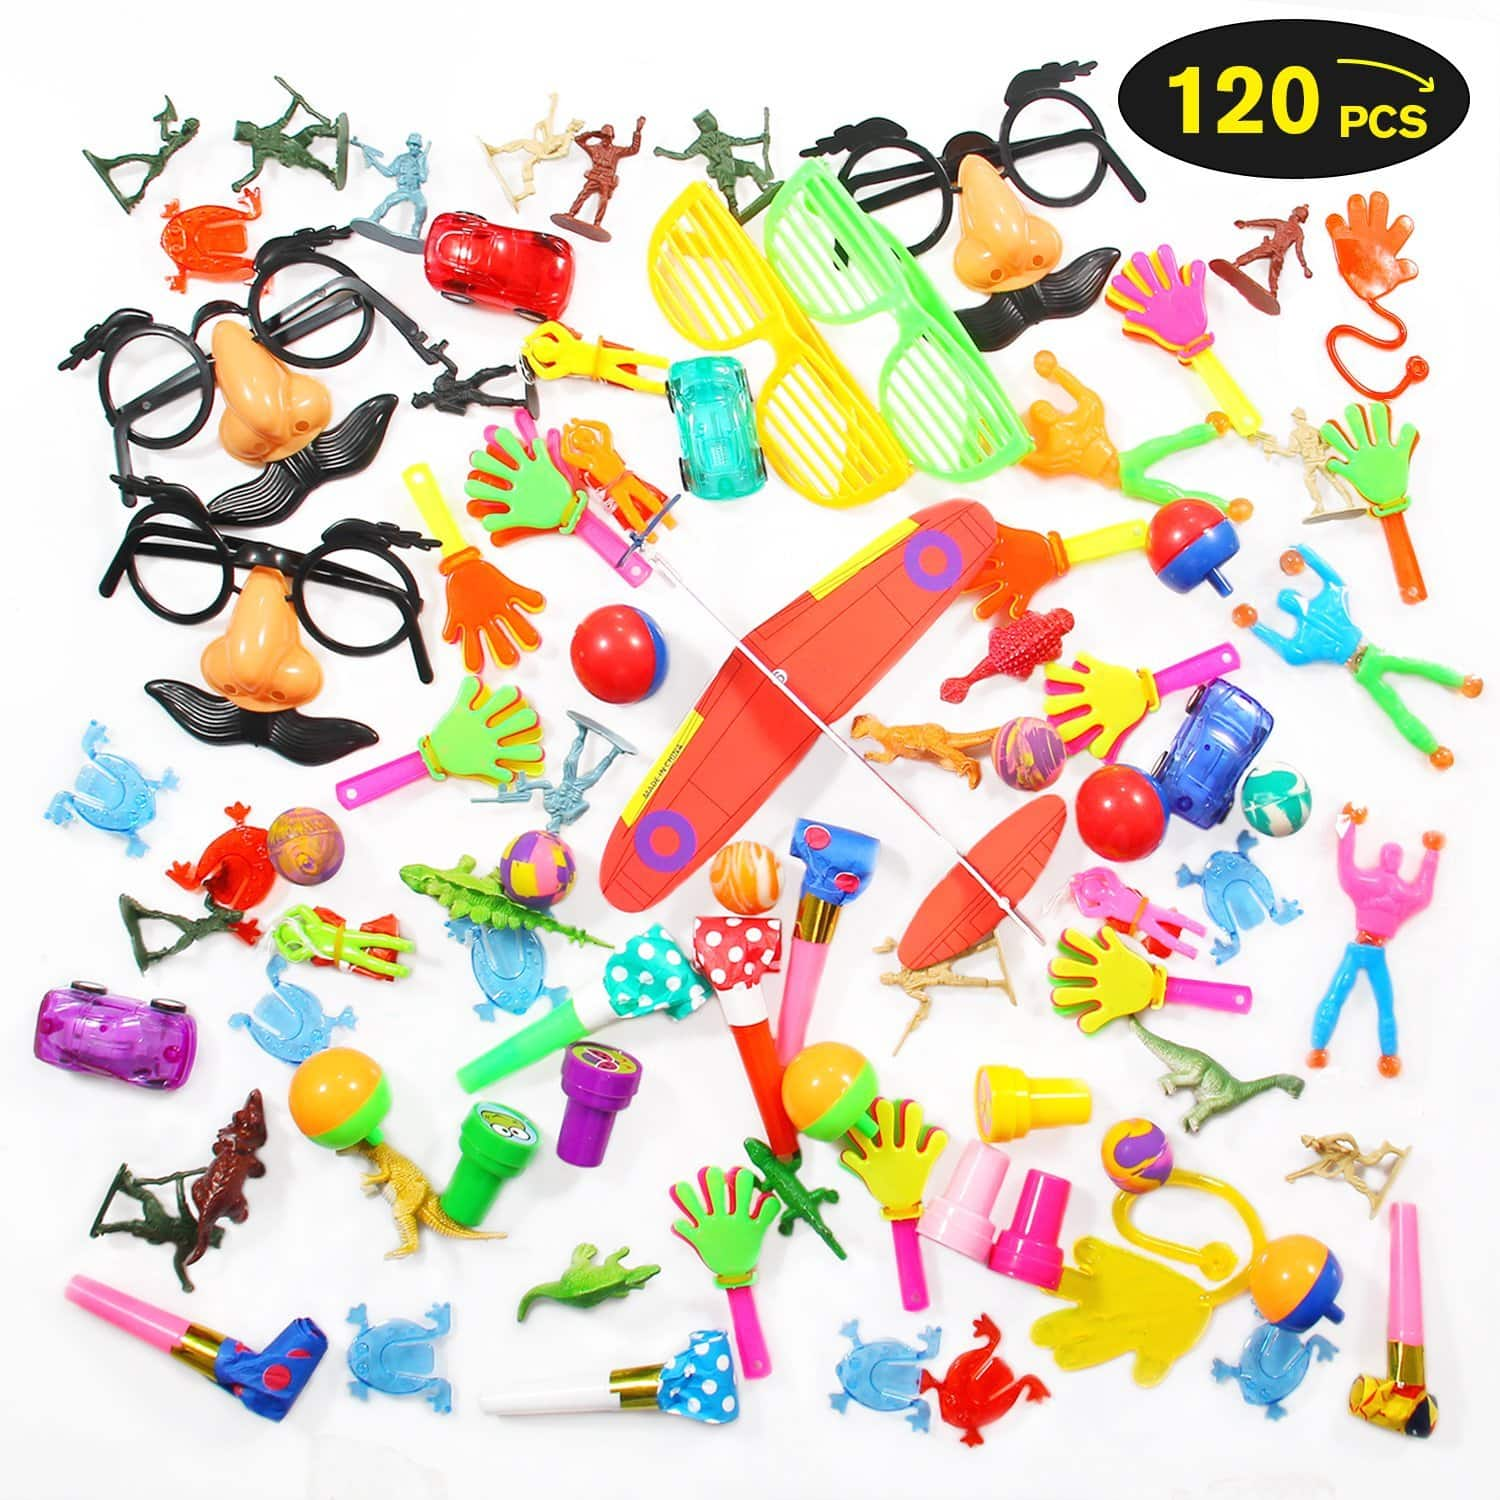 Amazon Geekper 120 Pack Party Favors Toy - $9.99 + Free Shipping